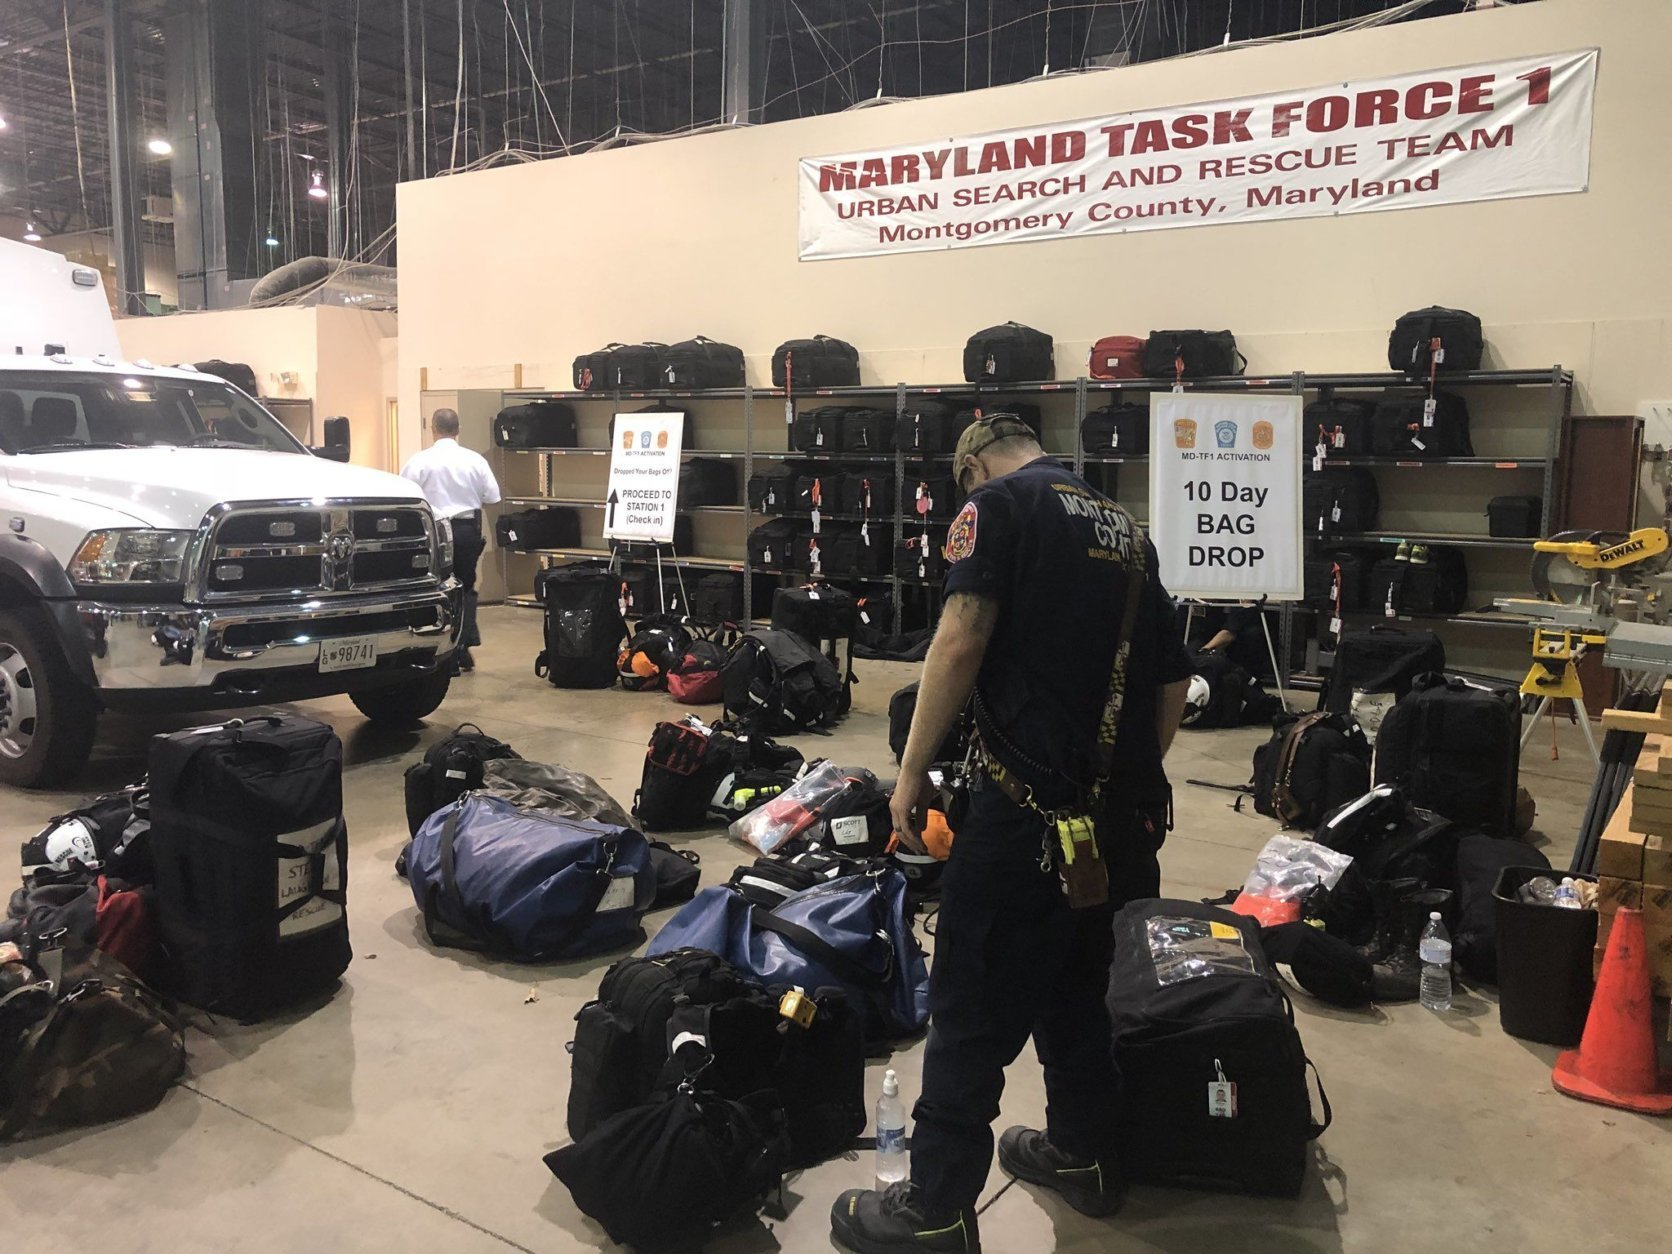 Sixteen search-and-rescue technicians with MD-TF1 were deployed from a staging warehouse in Montgomery County early Tuesday. (WTOP/Melissa Howell)